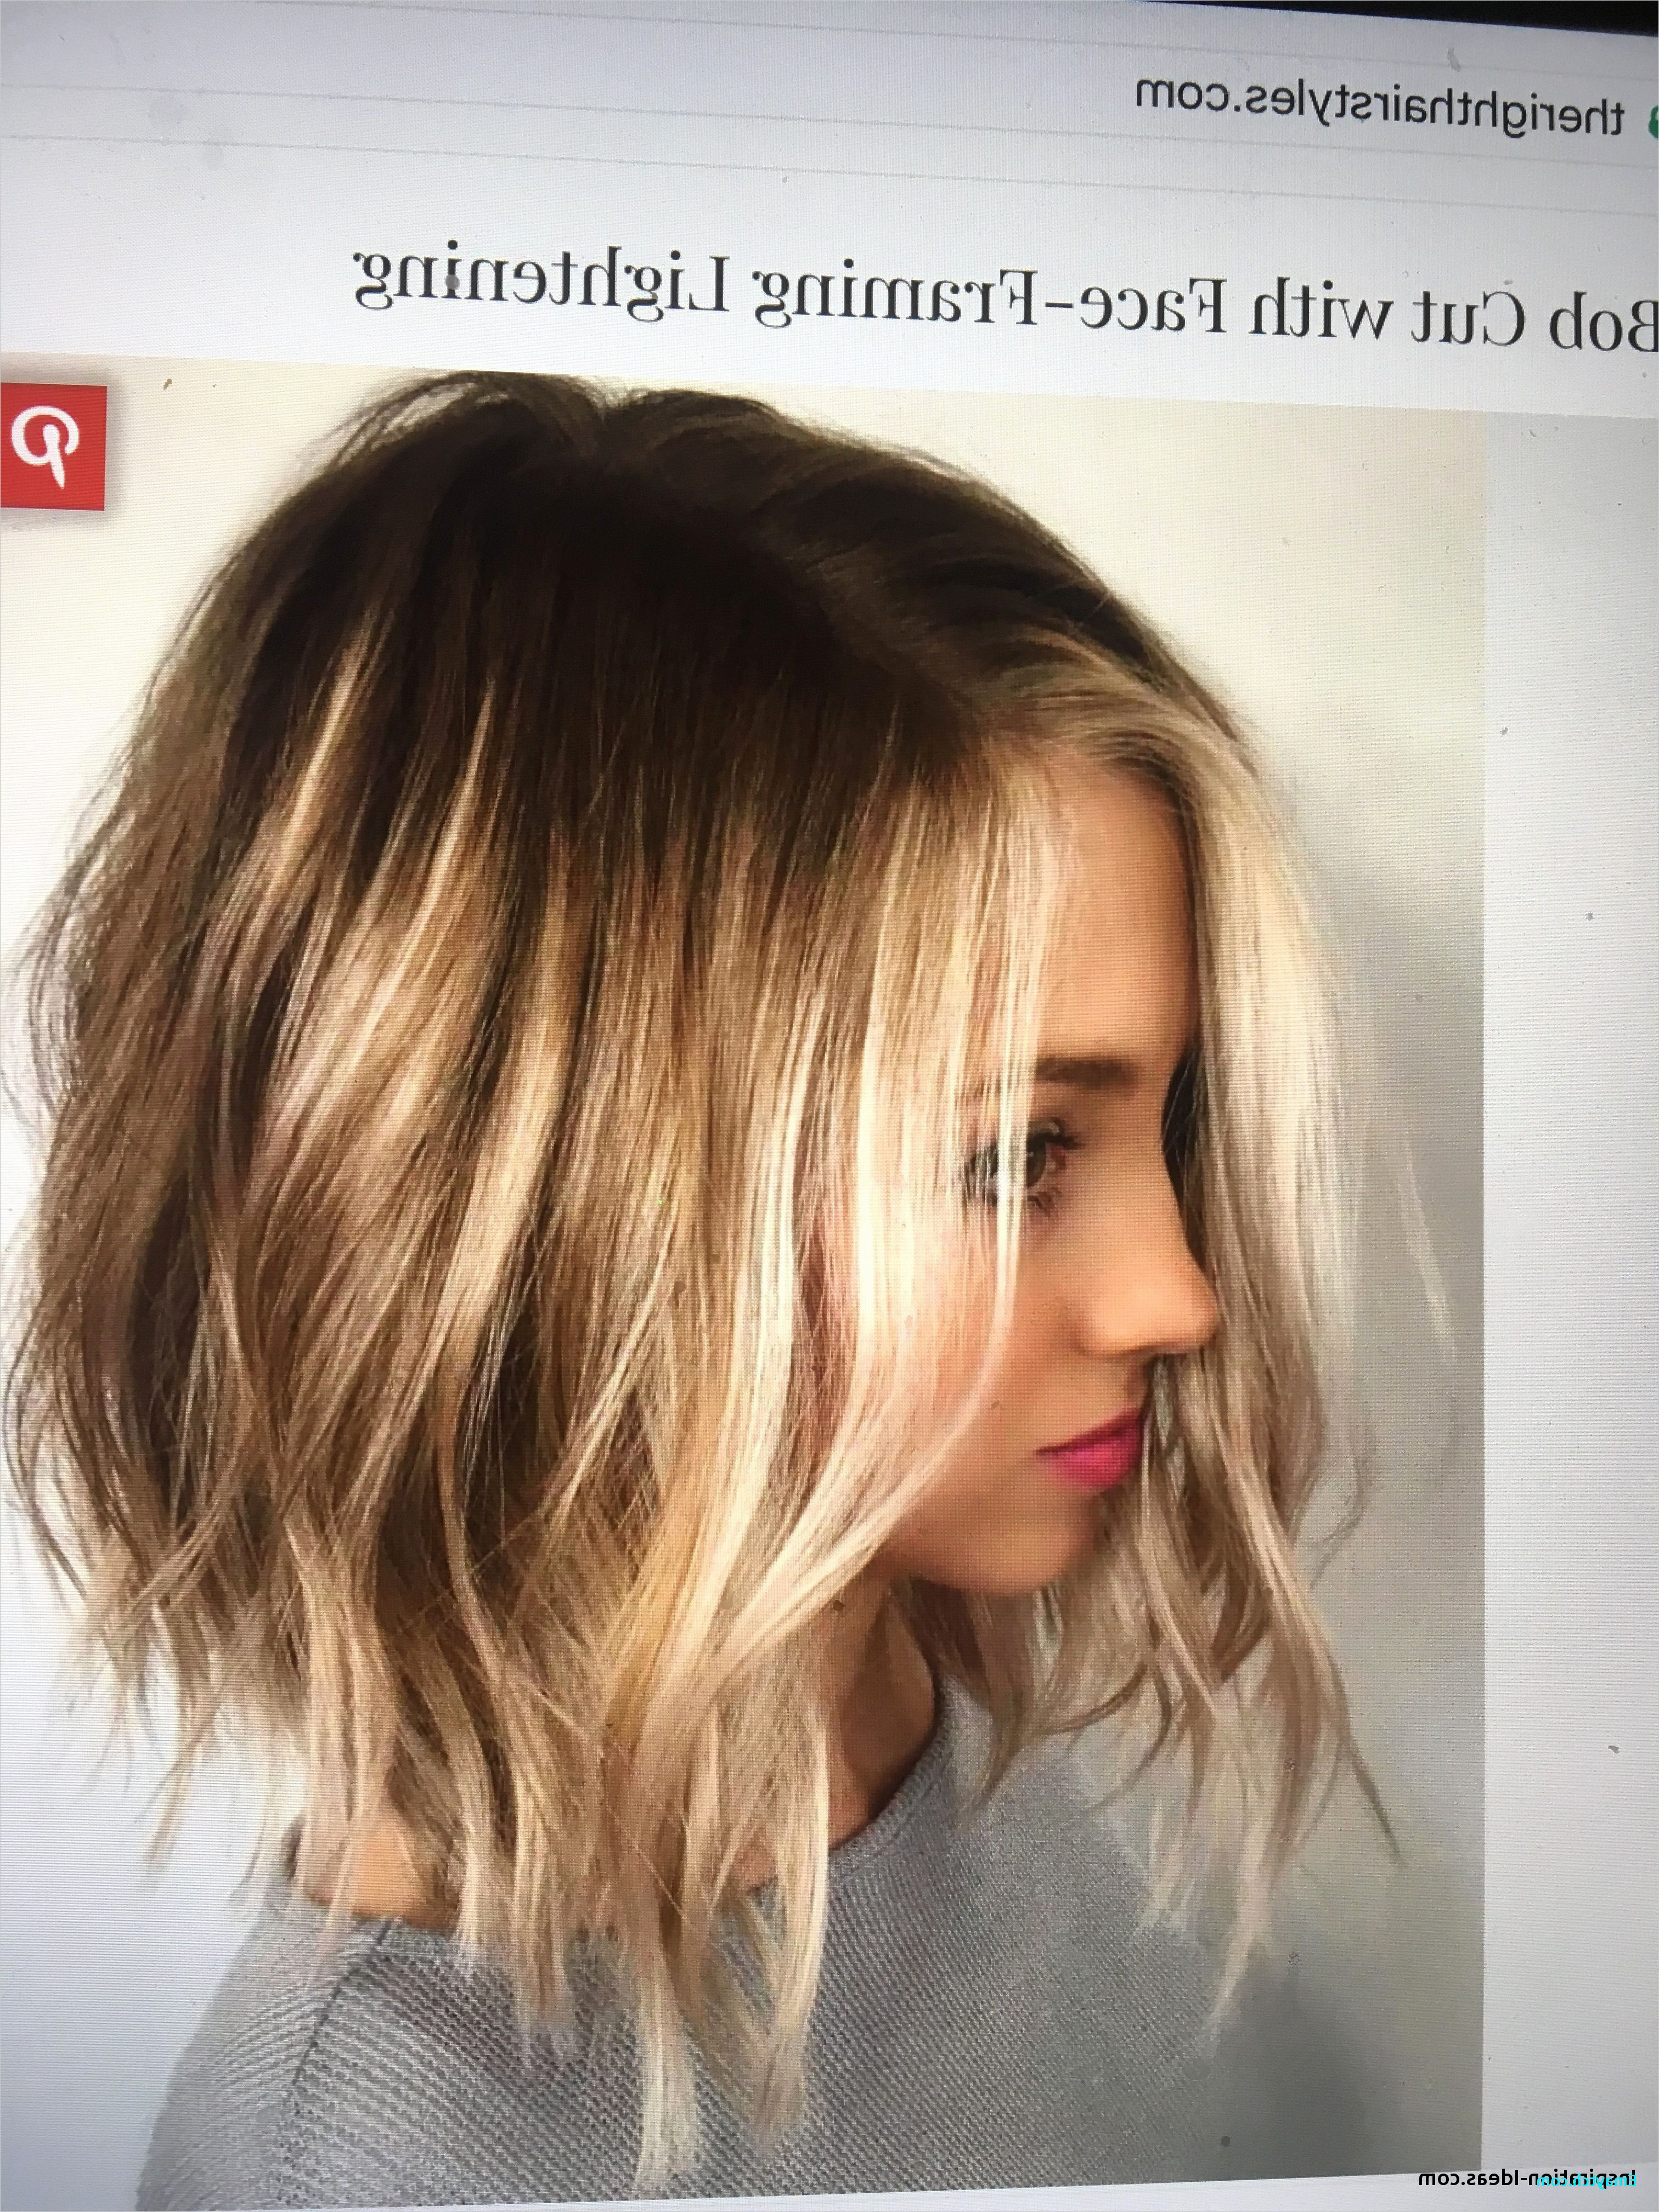 Hairstyles : Loose Curls Hairstyles Awe Inspiring 209 Regarding Pixie Haircuts With Bangs And Loose Curls (View 14 of 20)